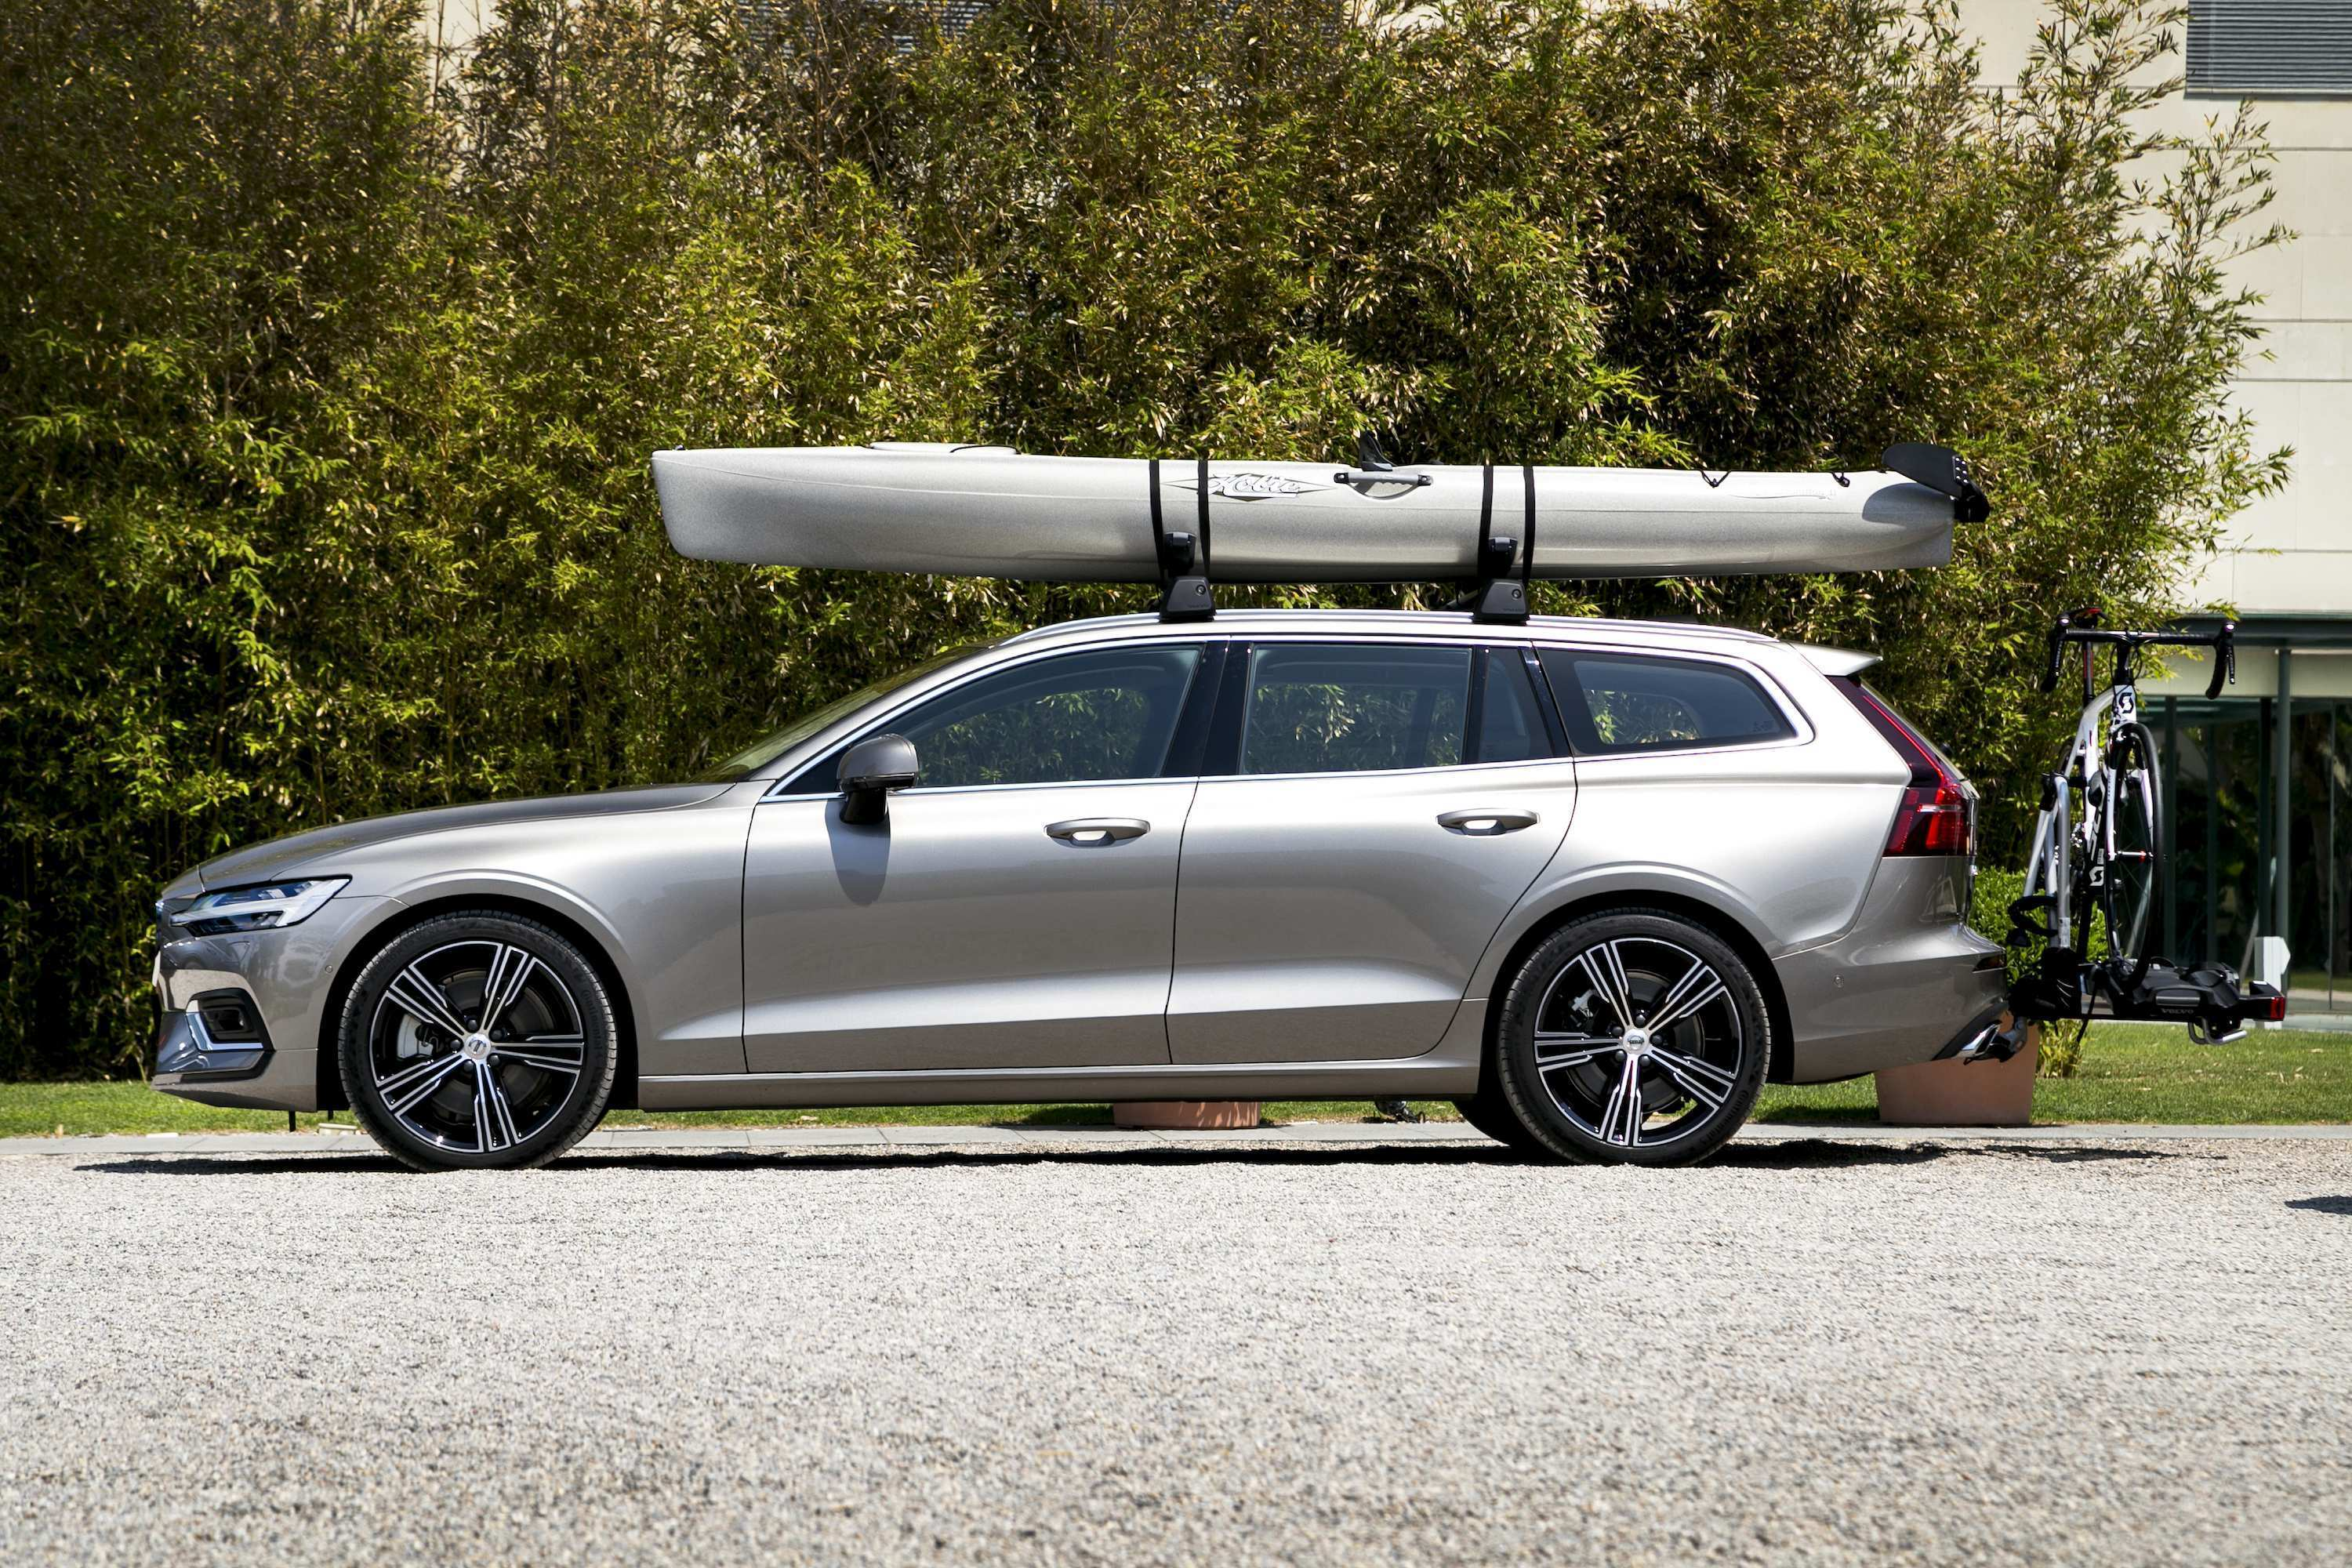 42 Gallery of 2019 Volvo Wagon Price for 2019 Volvo Wagon